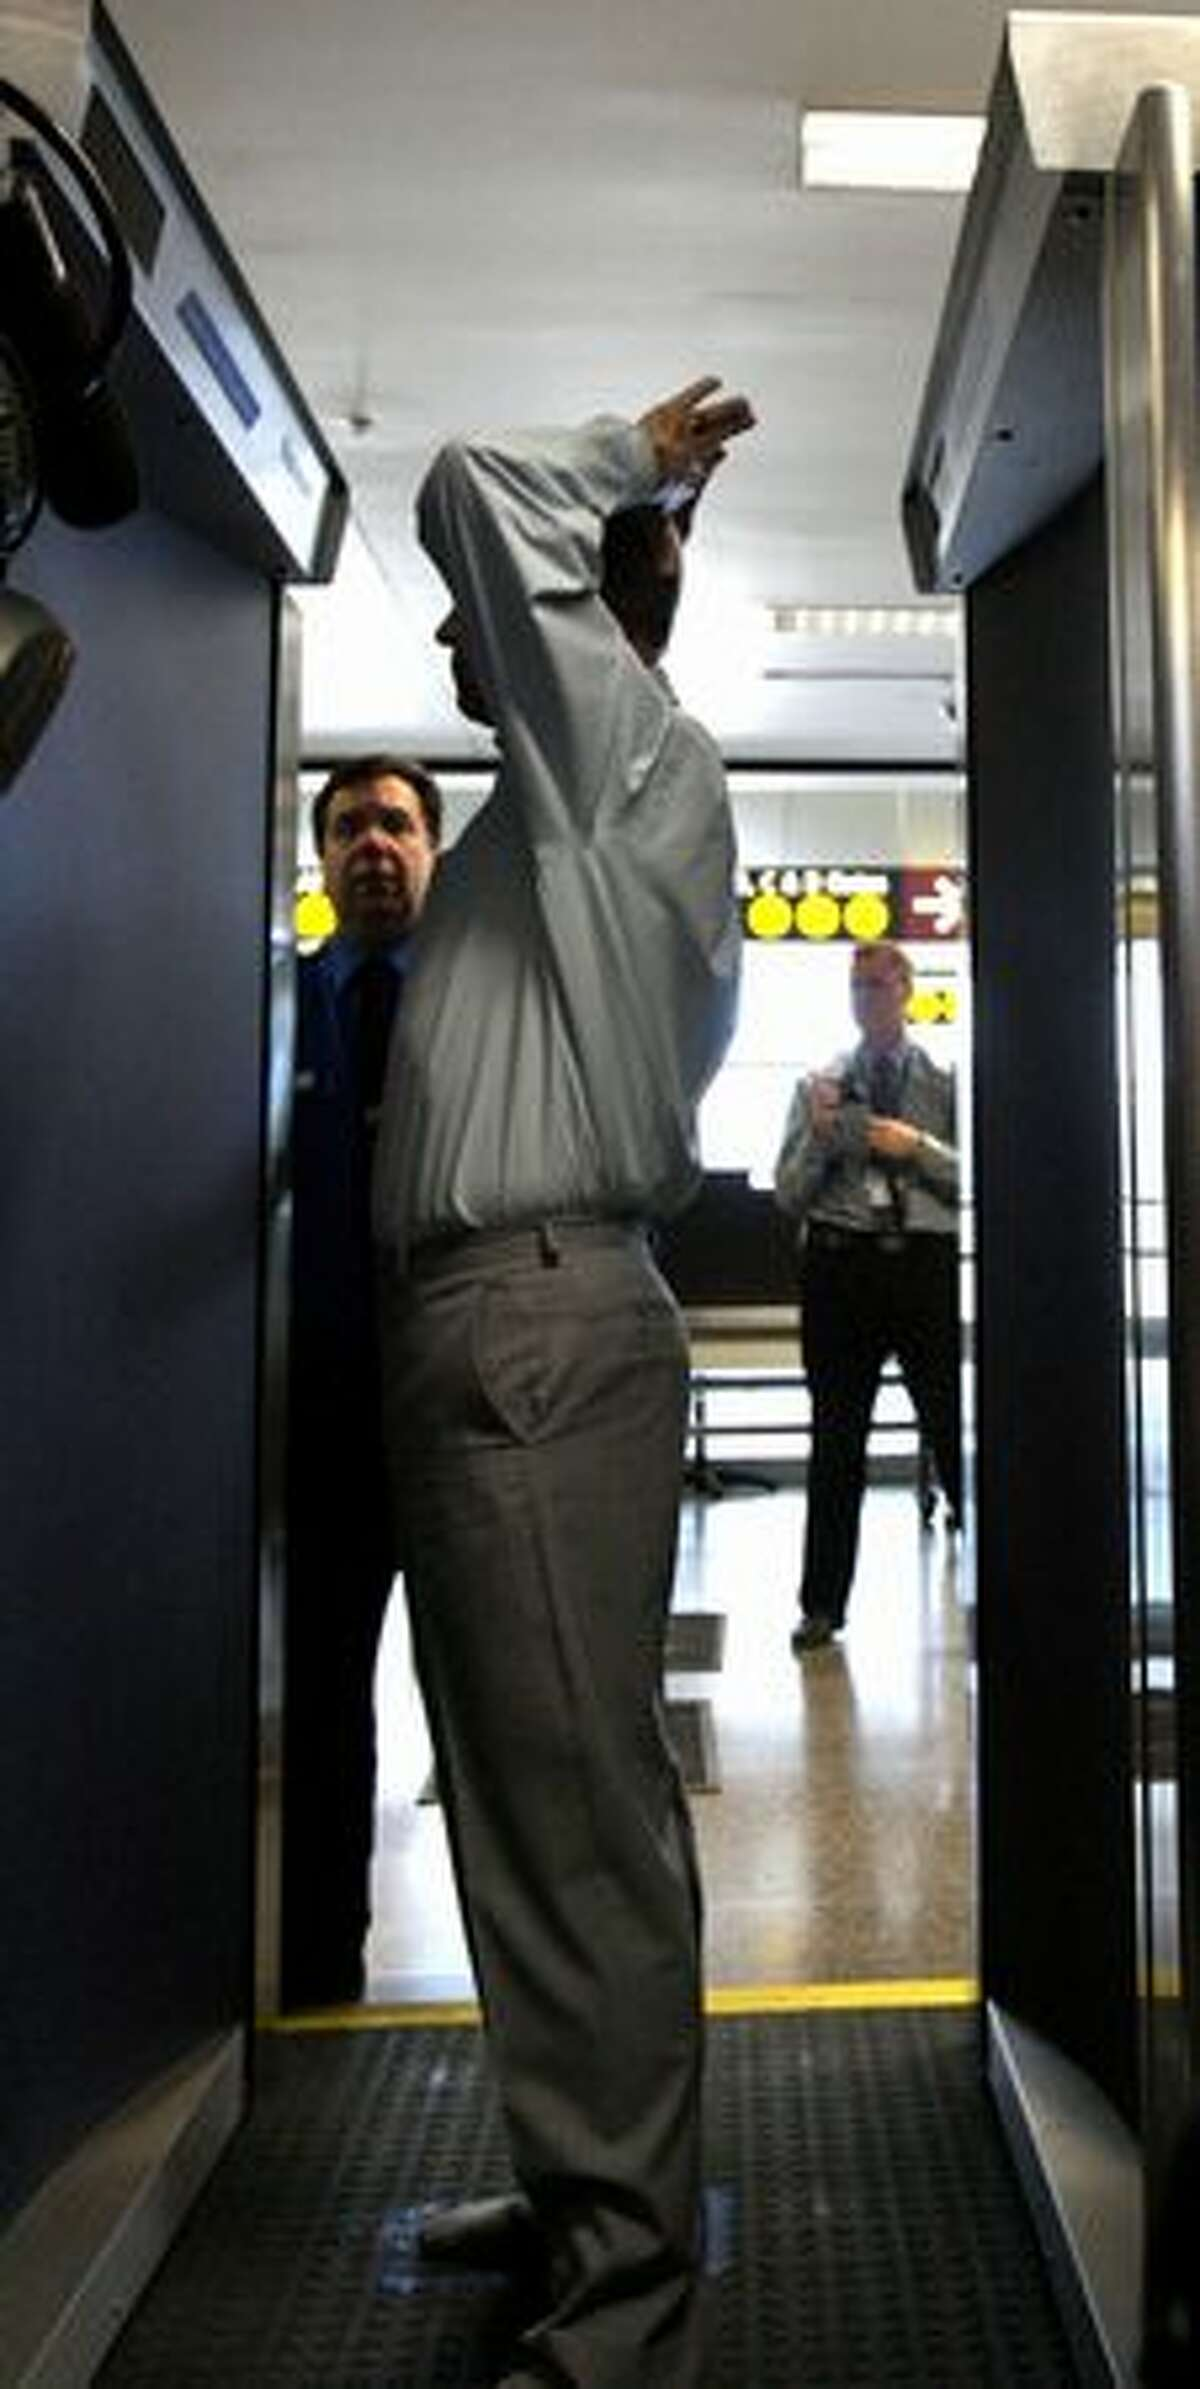 A Transportation Security Administration employee demonstrates a backscatter X-ray body scanner at Sea-Tac Airport.